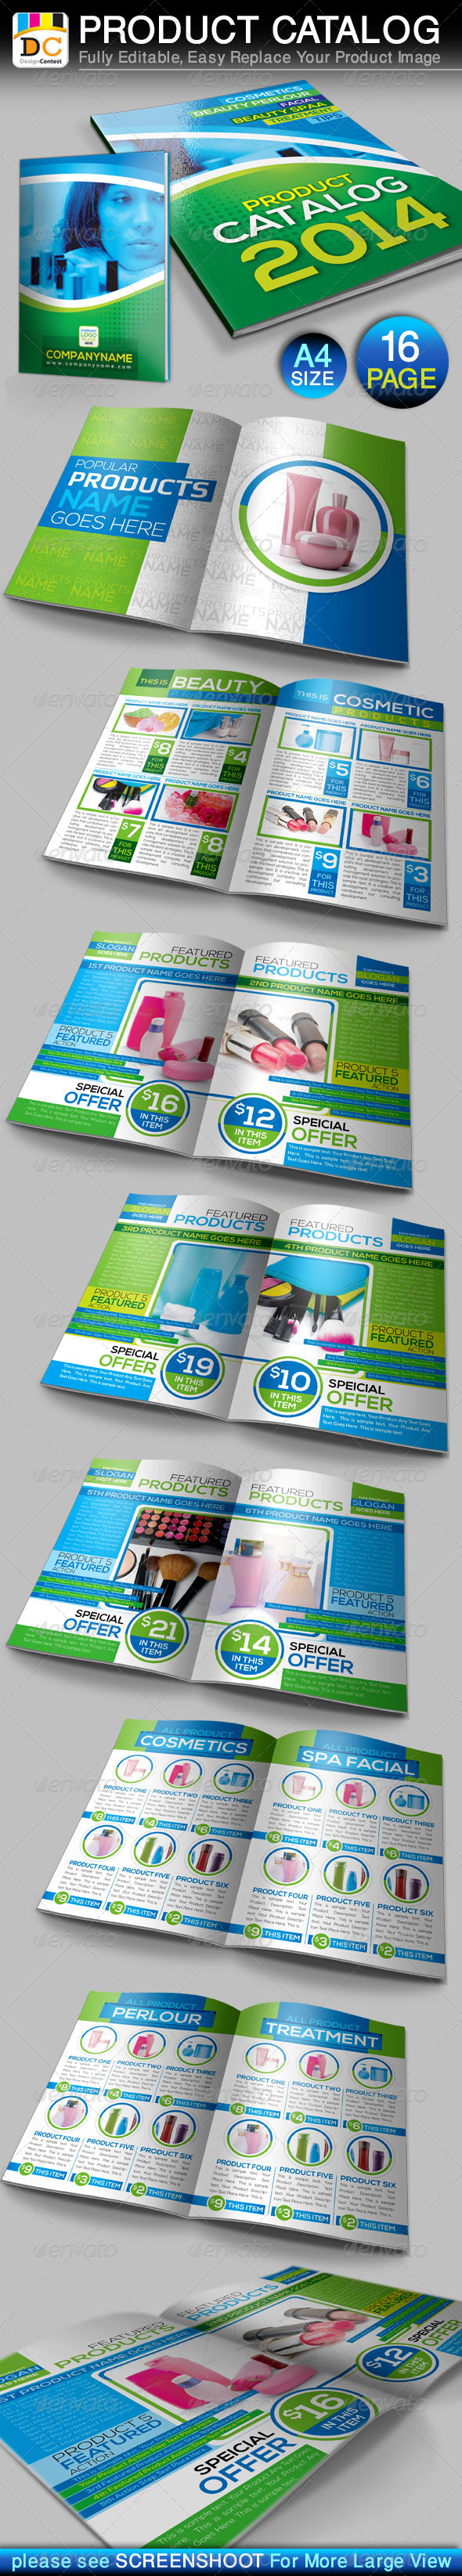 16 Pages Product Catalog Brochure Templates - Catalogs Brochures